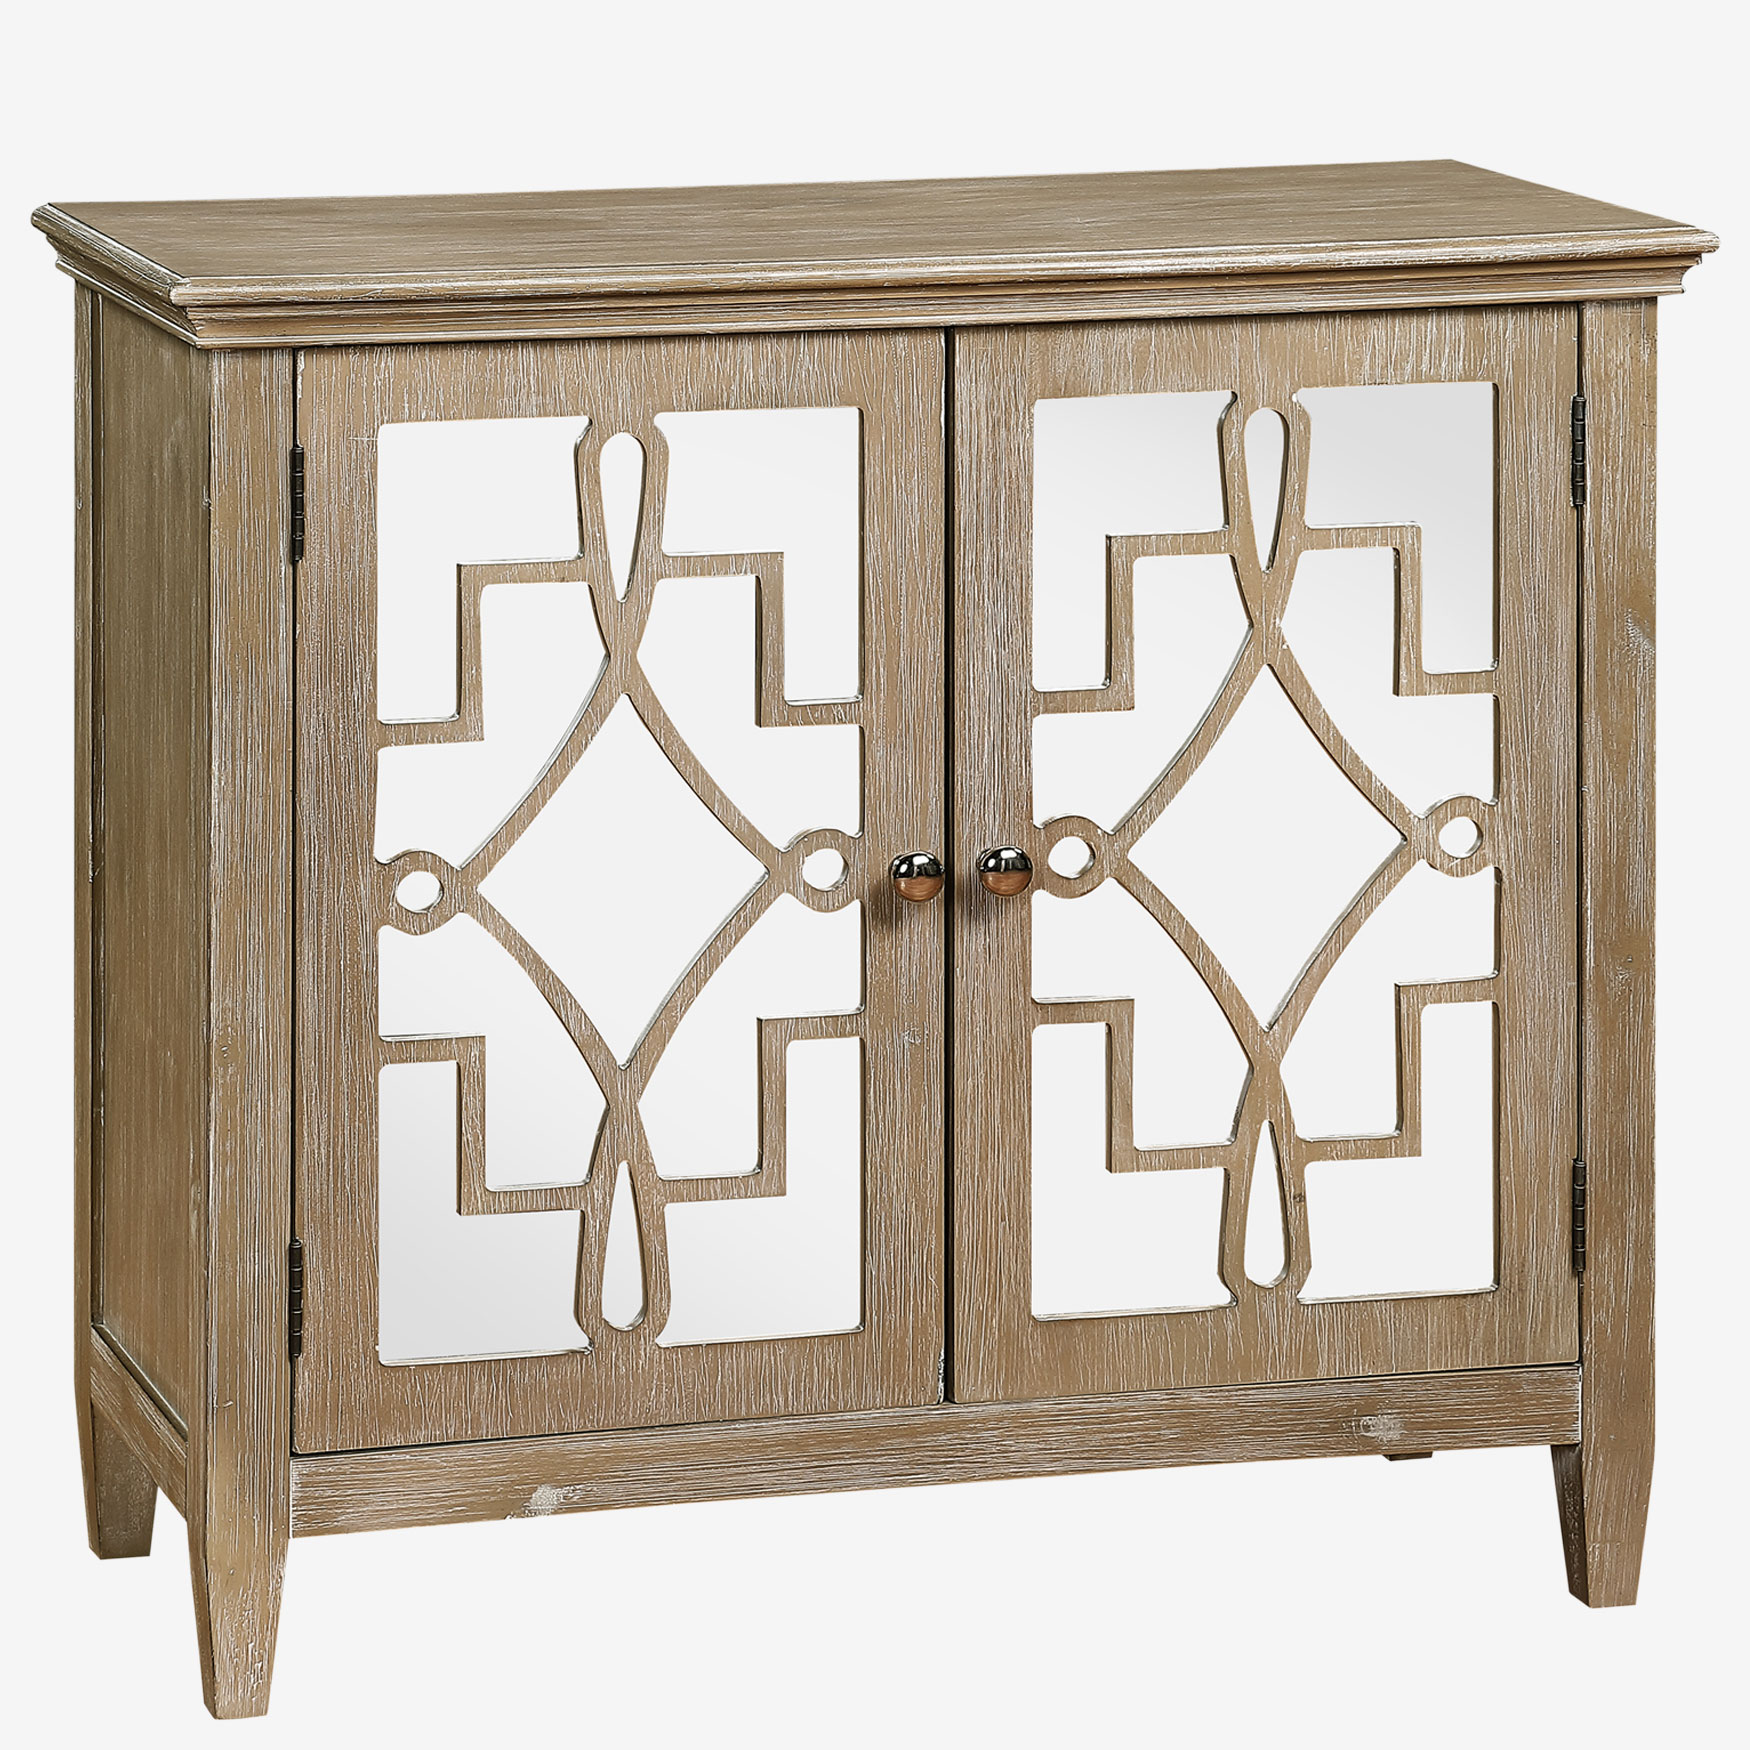 Lucy Accent Chest With Mirrored Doors, WHITE WASH